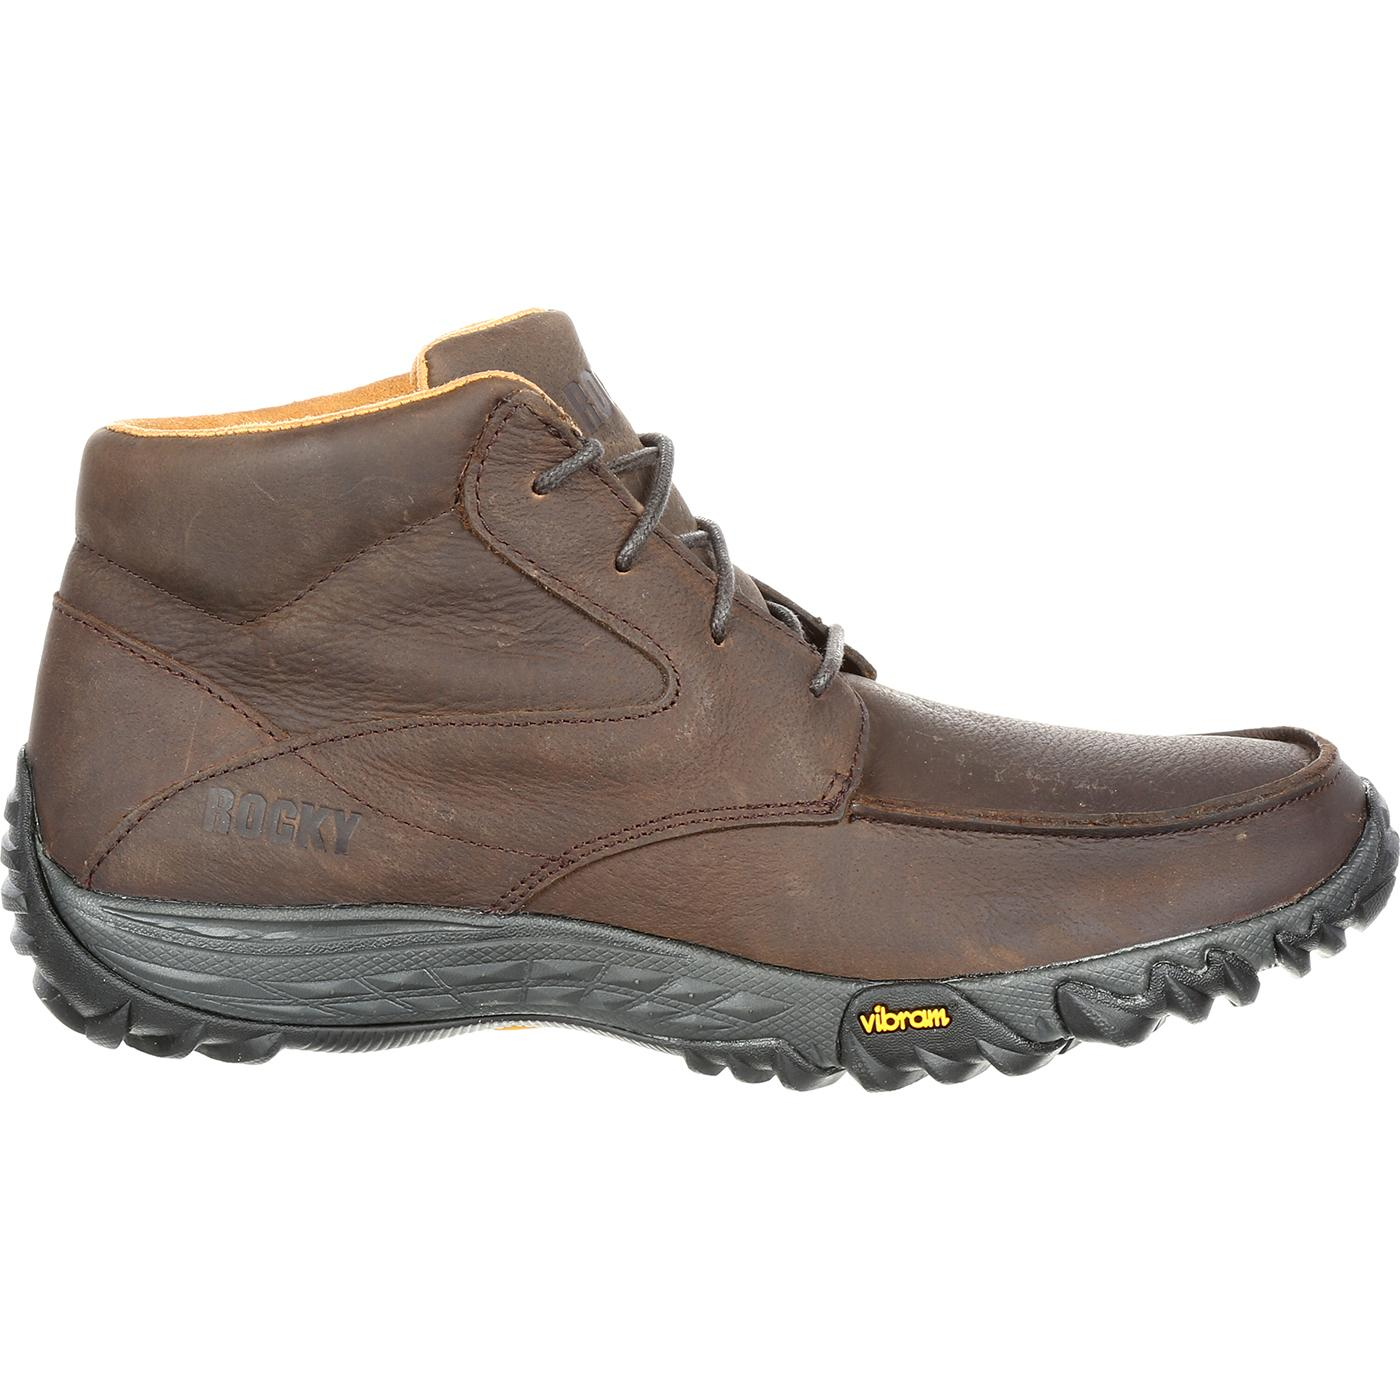 Get Extra Percentage off with radiance-project.ml Coupon Codes December Check out all the latest Lehigh Safety Shoes Coupons and Apply them for instantly Savings.